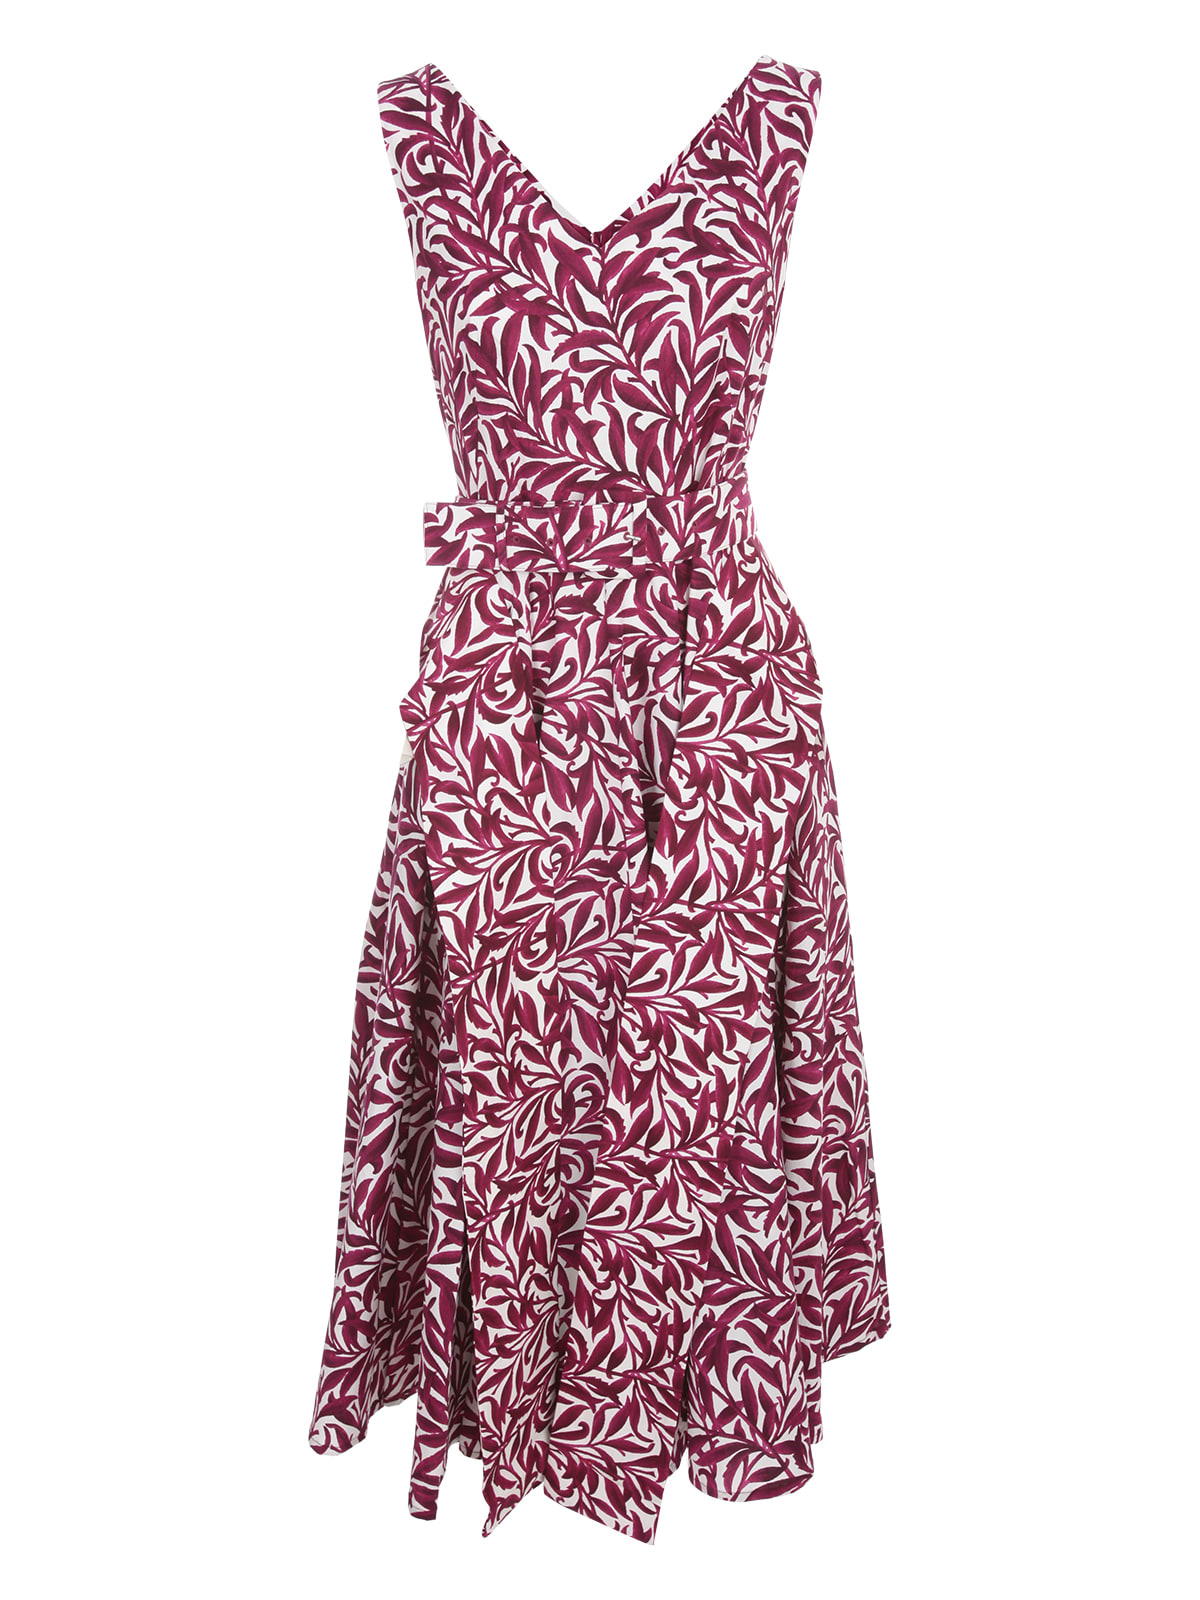 Buy Samantha Sung Aster Cs Midi Dress S/s Boat Neck online, shop Samantha Sung with free shipping